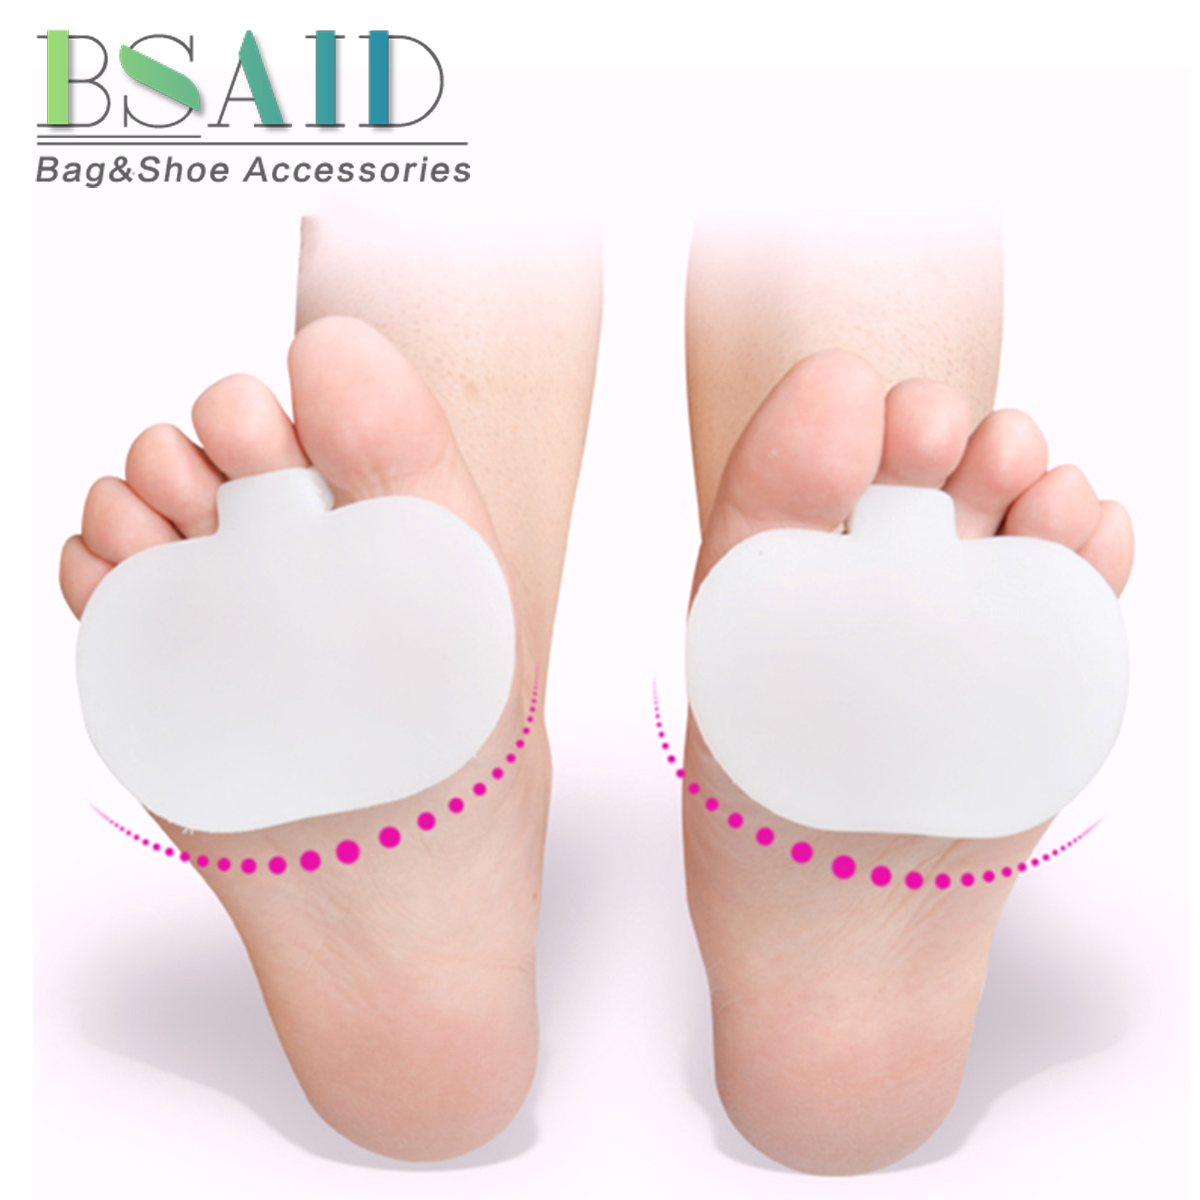 цена на BSAID 1 Pair Silicone Gel Soft Metatarsal Pads Small Neuromas Cushion Separators Forefoot Foot Care Insoles Insert for Men Women